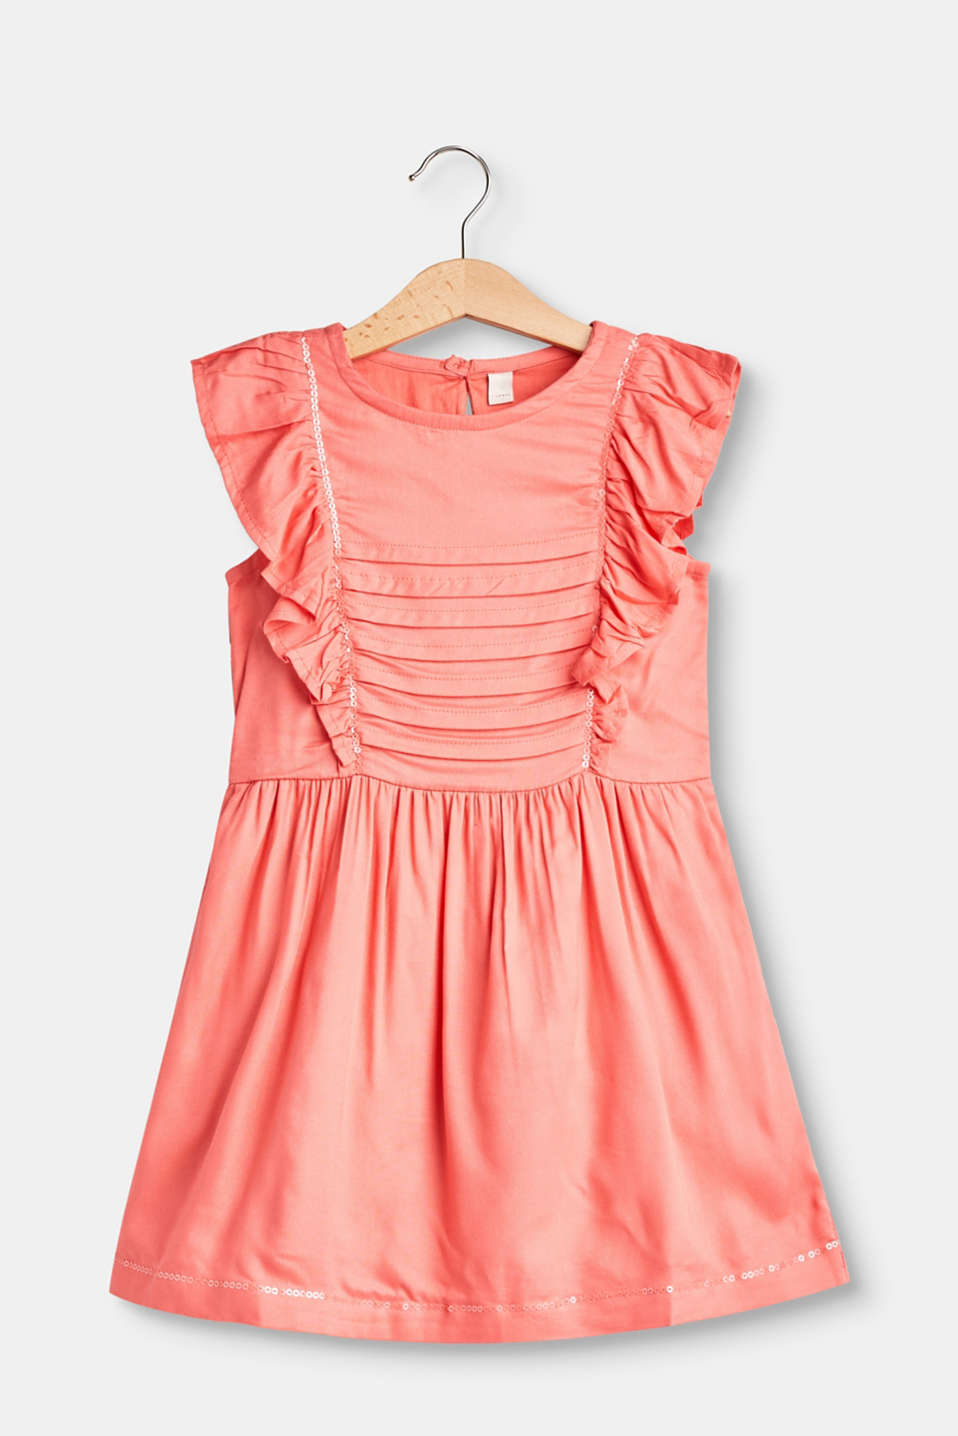 Esprit - Lightweight woven dress with playful details